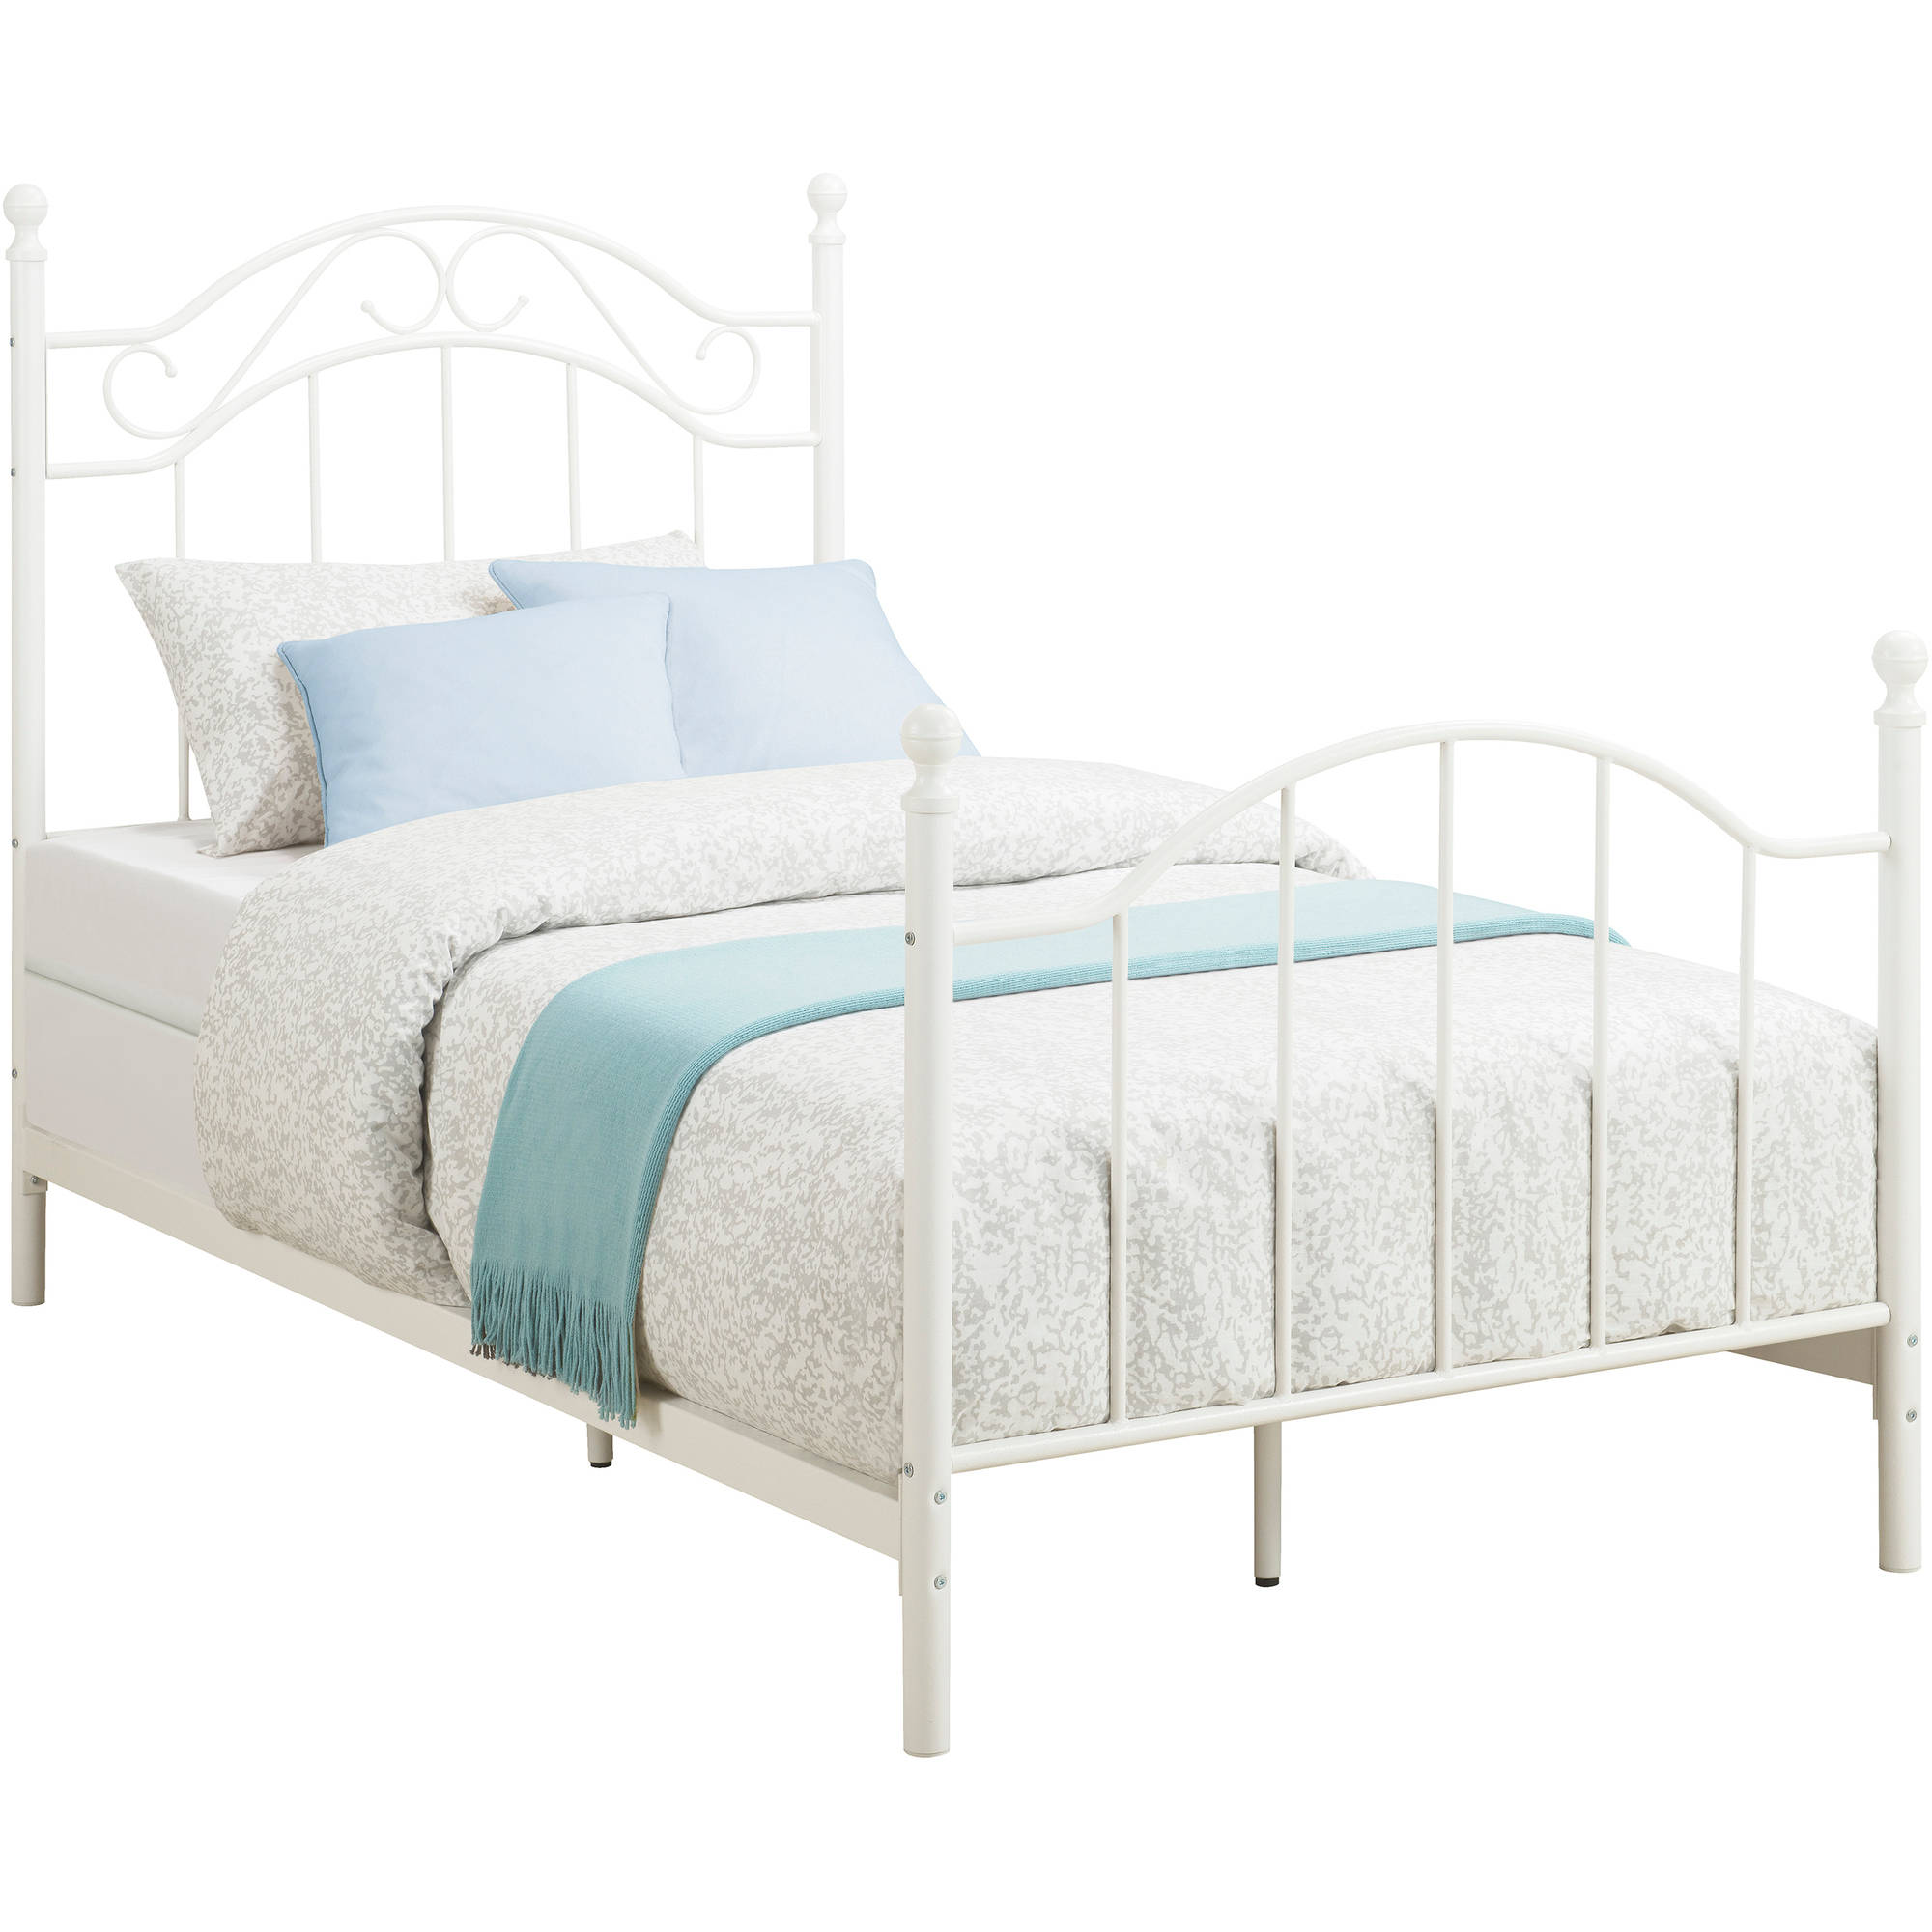 Twin Metal Bed Daybeds Frame Footboard Headboard Girls Bedroom White ...